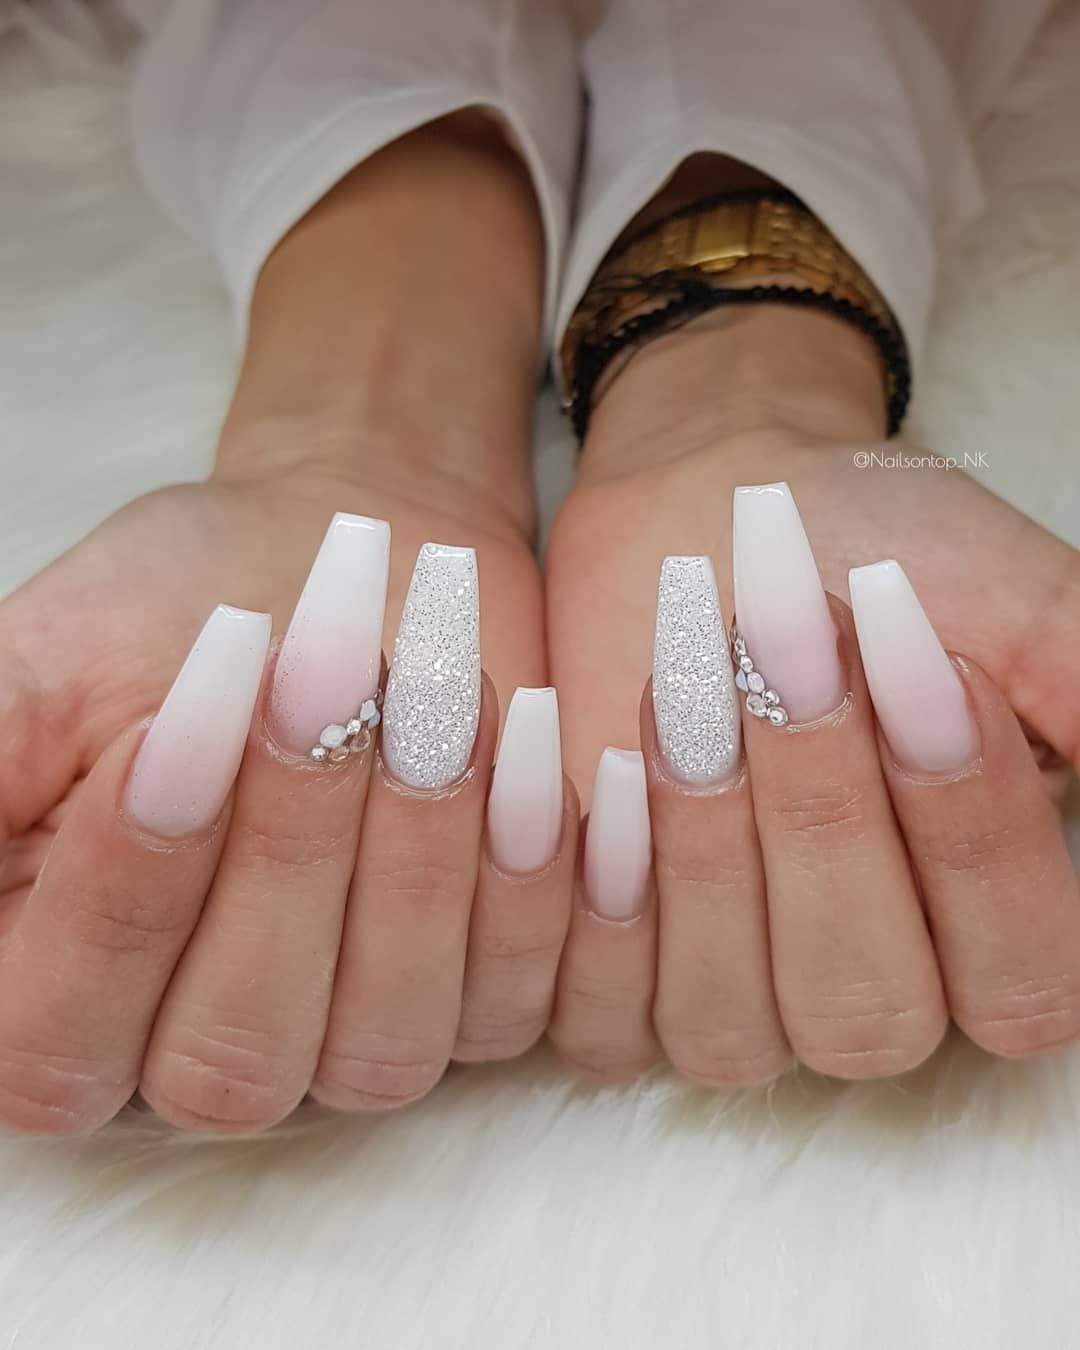 Nailsontop Nk On Instagram French Fade Babyboomer Diamond And Swarovskis Jet Set Beauty Nails Nagel Mit Diamanten Fade Nagel Nagel Inspiration